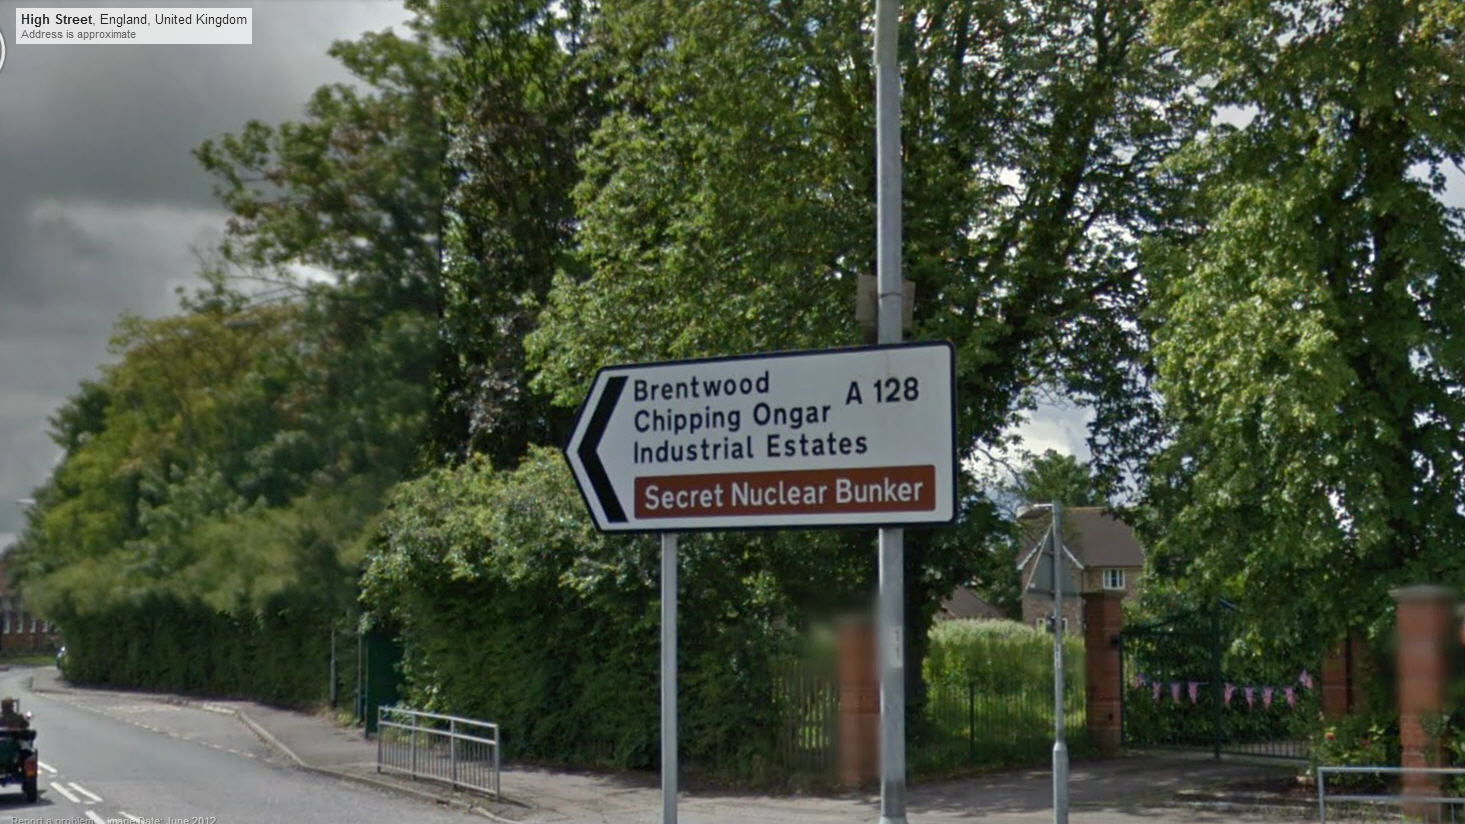 This way to the Secret Nuclear Bunker.  Psst – don't tell anyone!